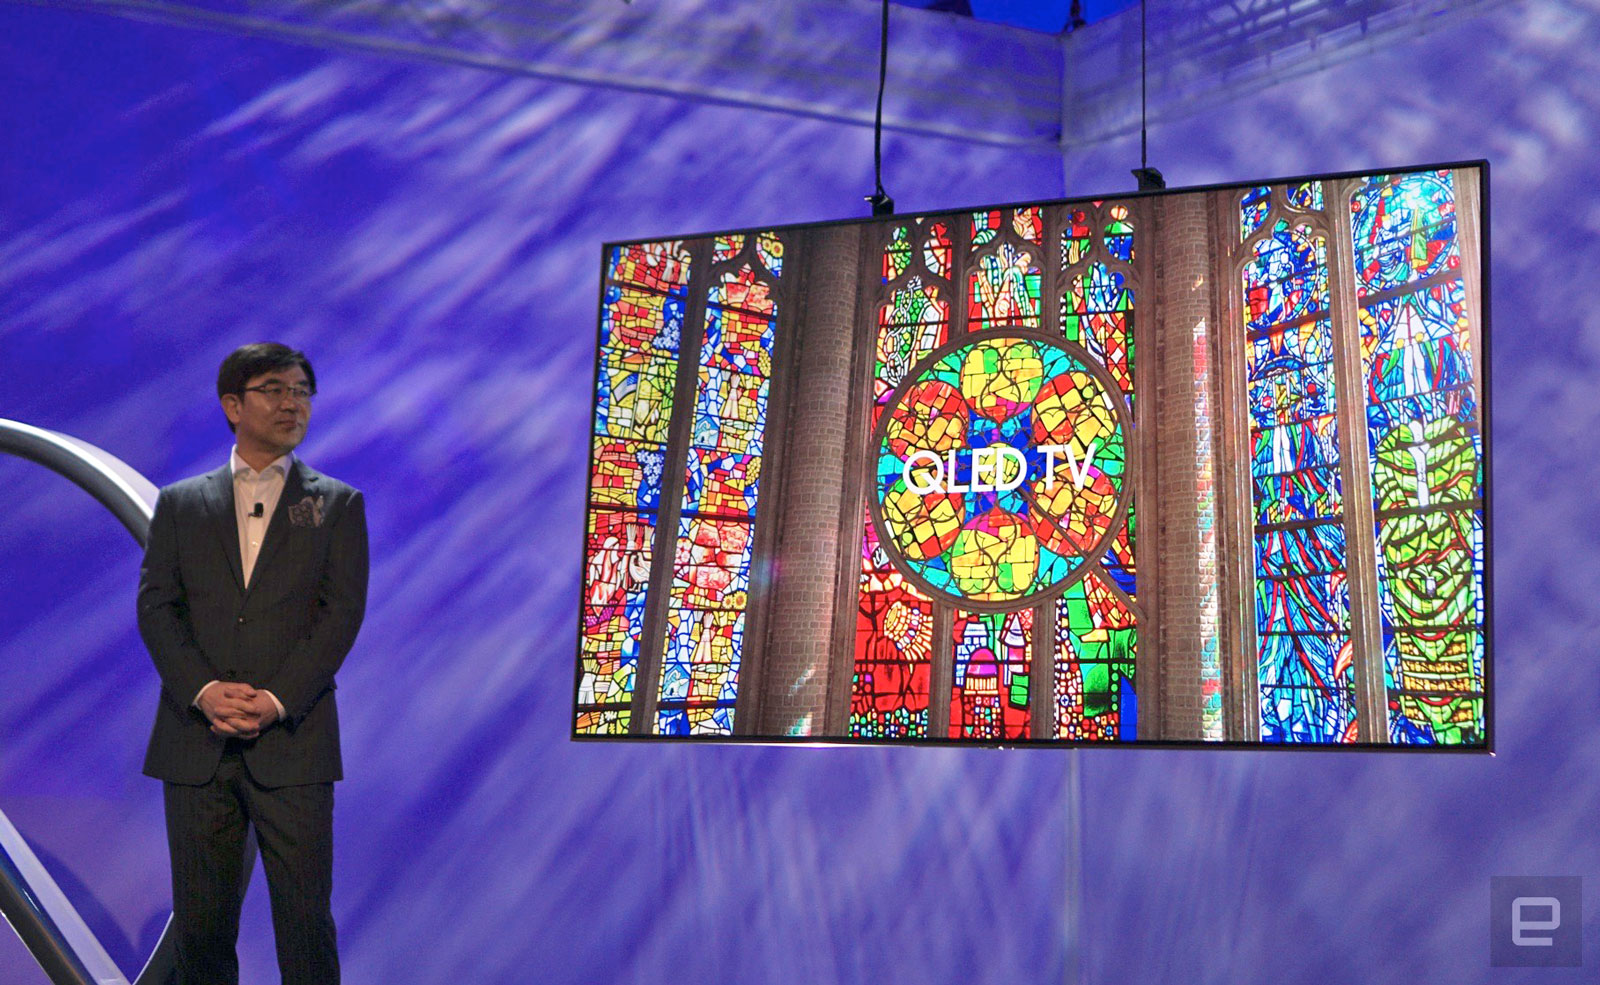 LG Nano Cell 4K TVs promise wider viewing angles